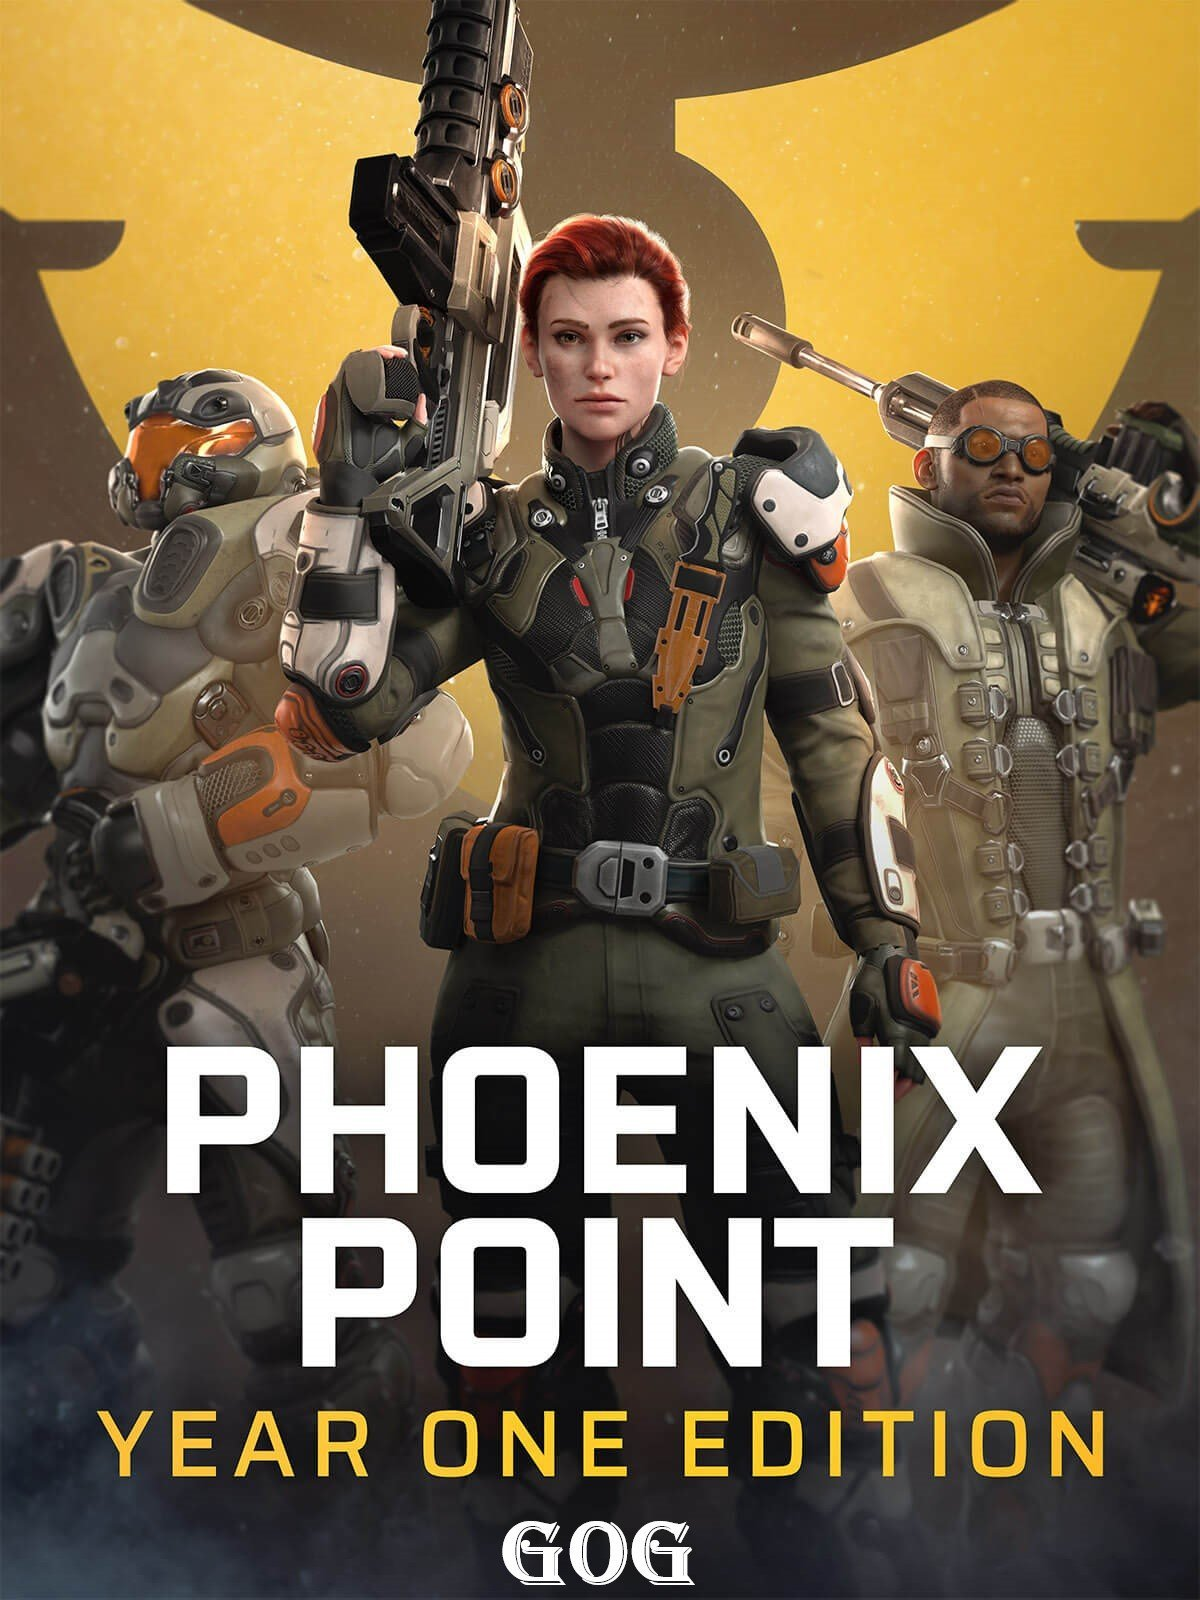 Обложка к игре Phoenix Point: Year One Edition v.1.10 [GOG] (2019) Лицензия